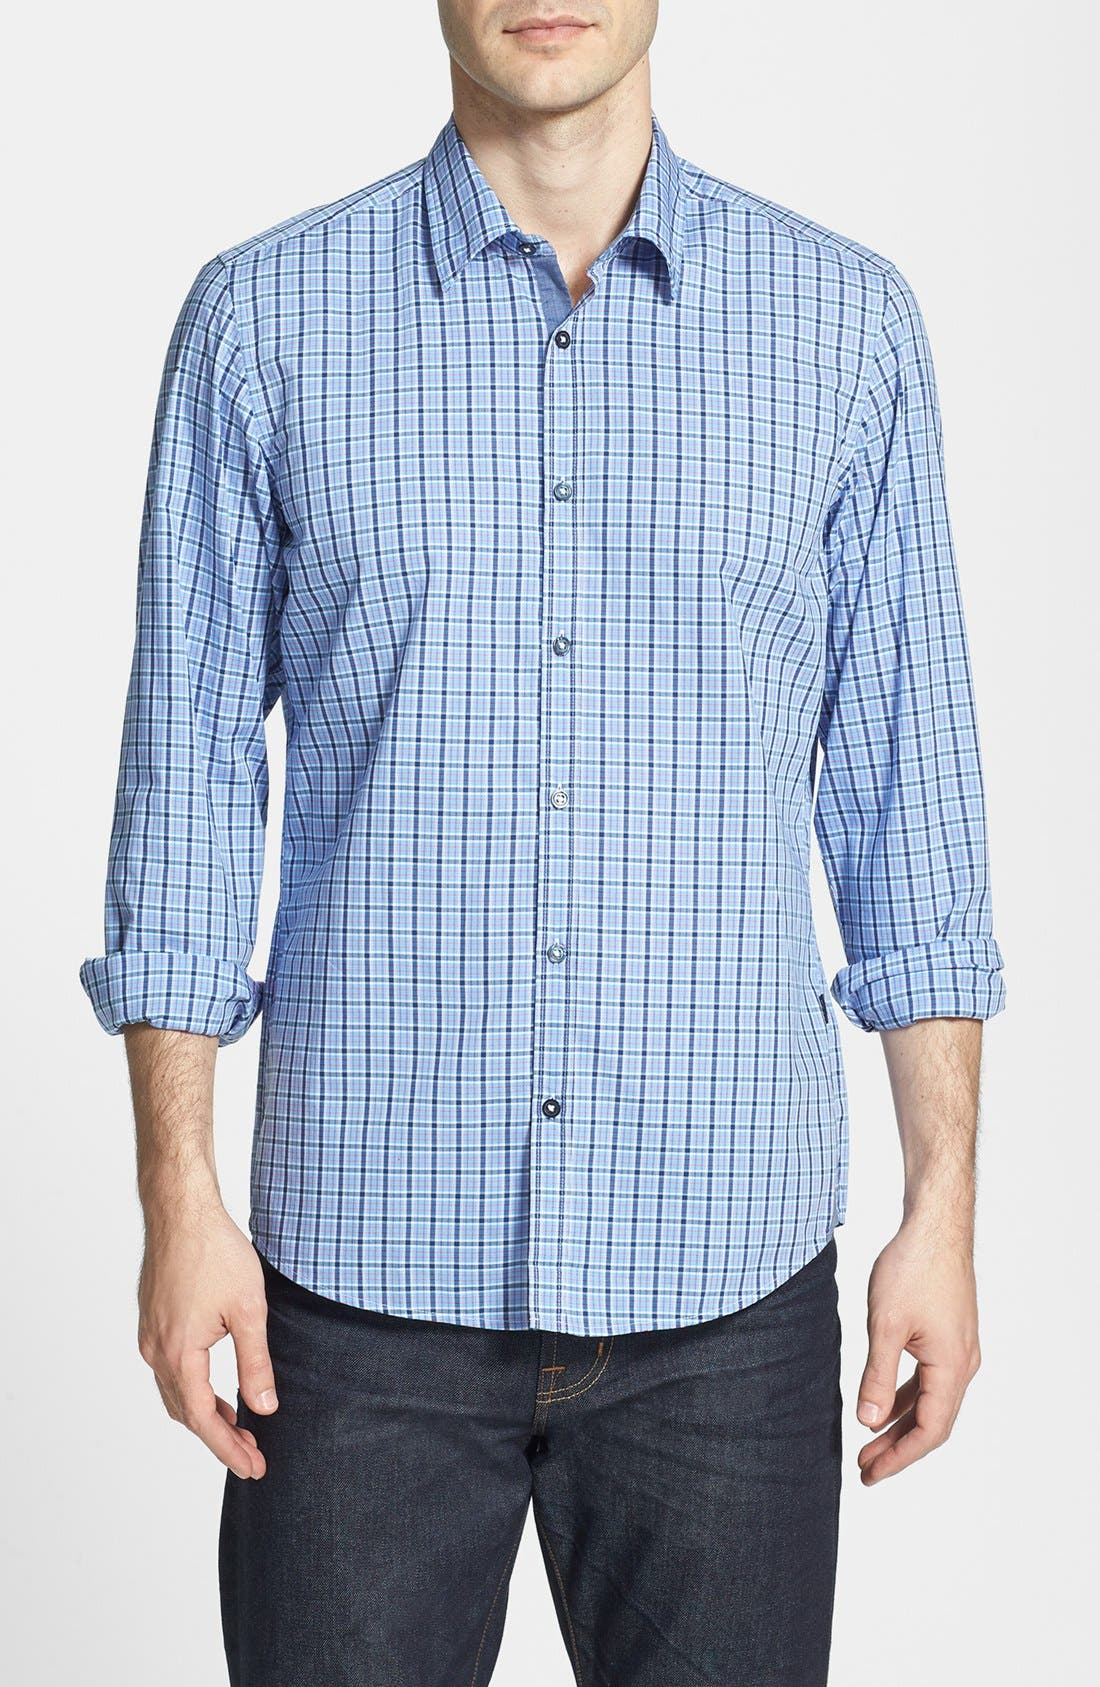 Alternate Image 1 Selected - BOSS HUGO BOSS 'Obert' Plaid Sport Shirt